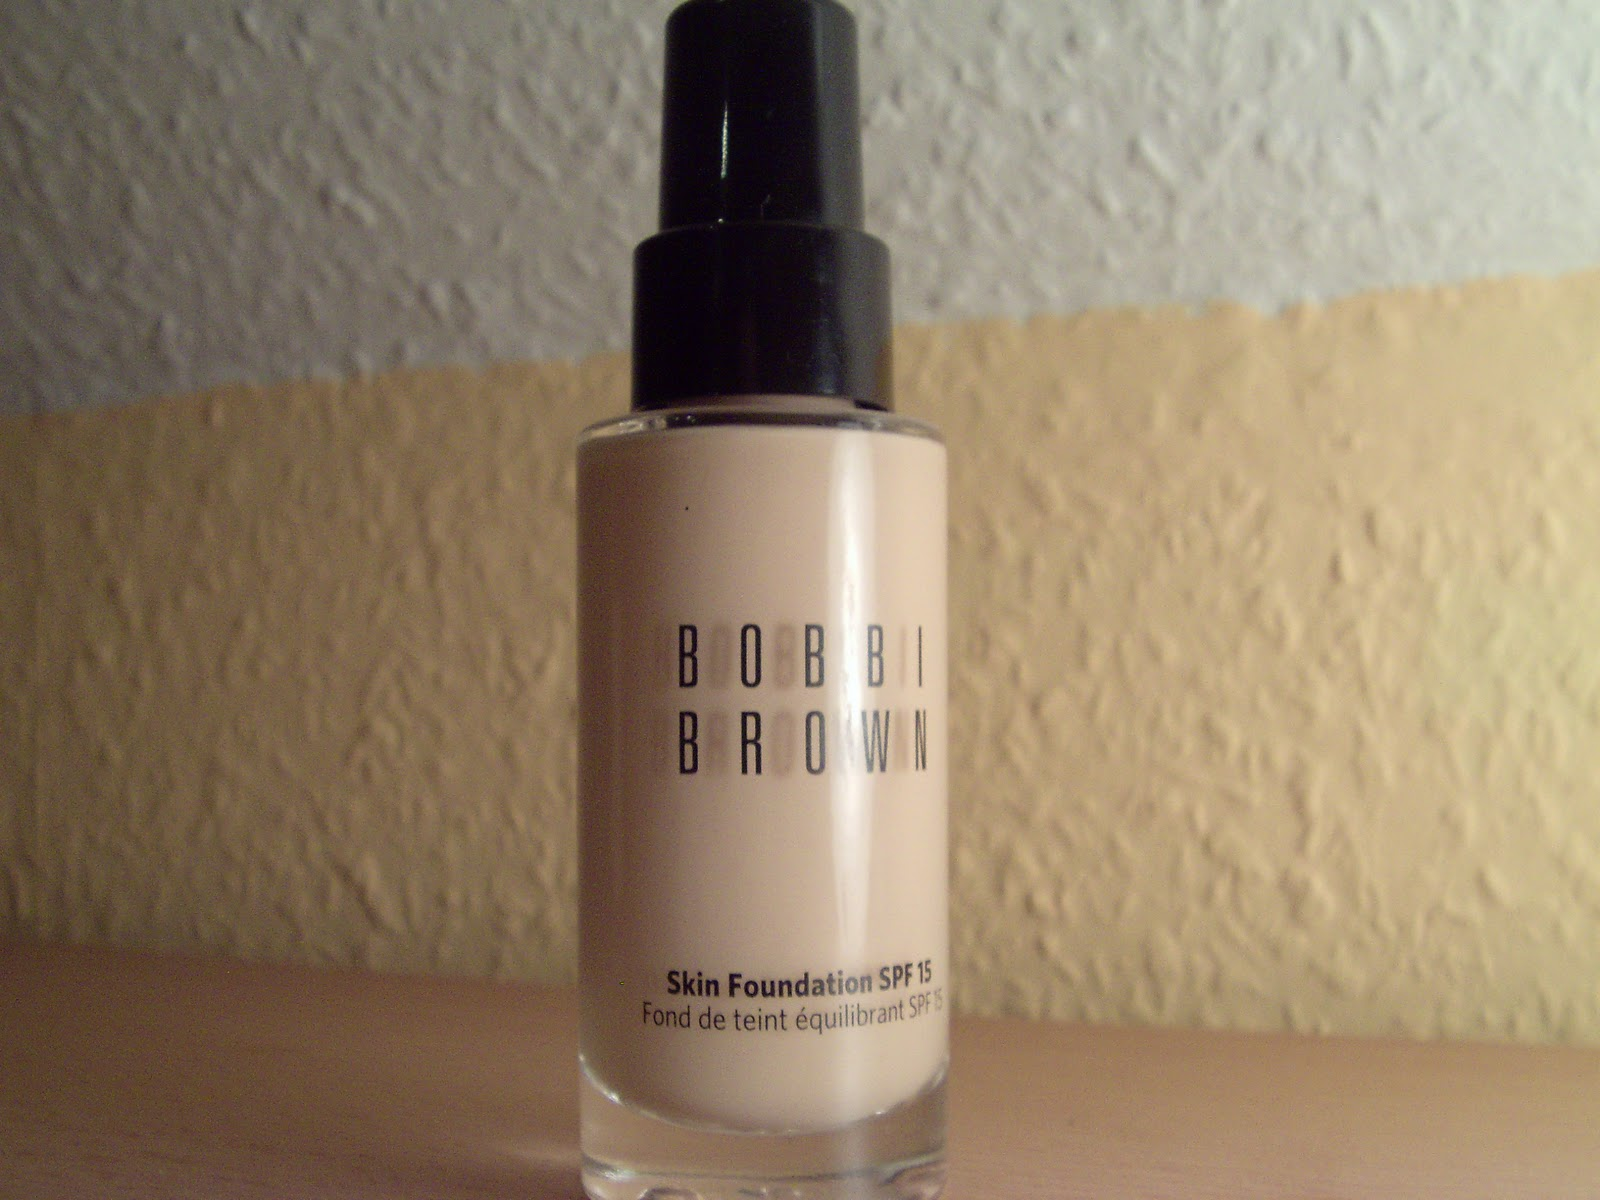 tinas beauty blog review bobbi brown skin foundation in der farbe 0 porcelain. Black Bedroom Furniture Sets. Home Design Ideas